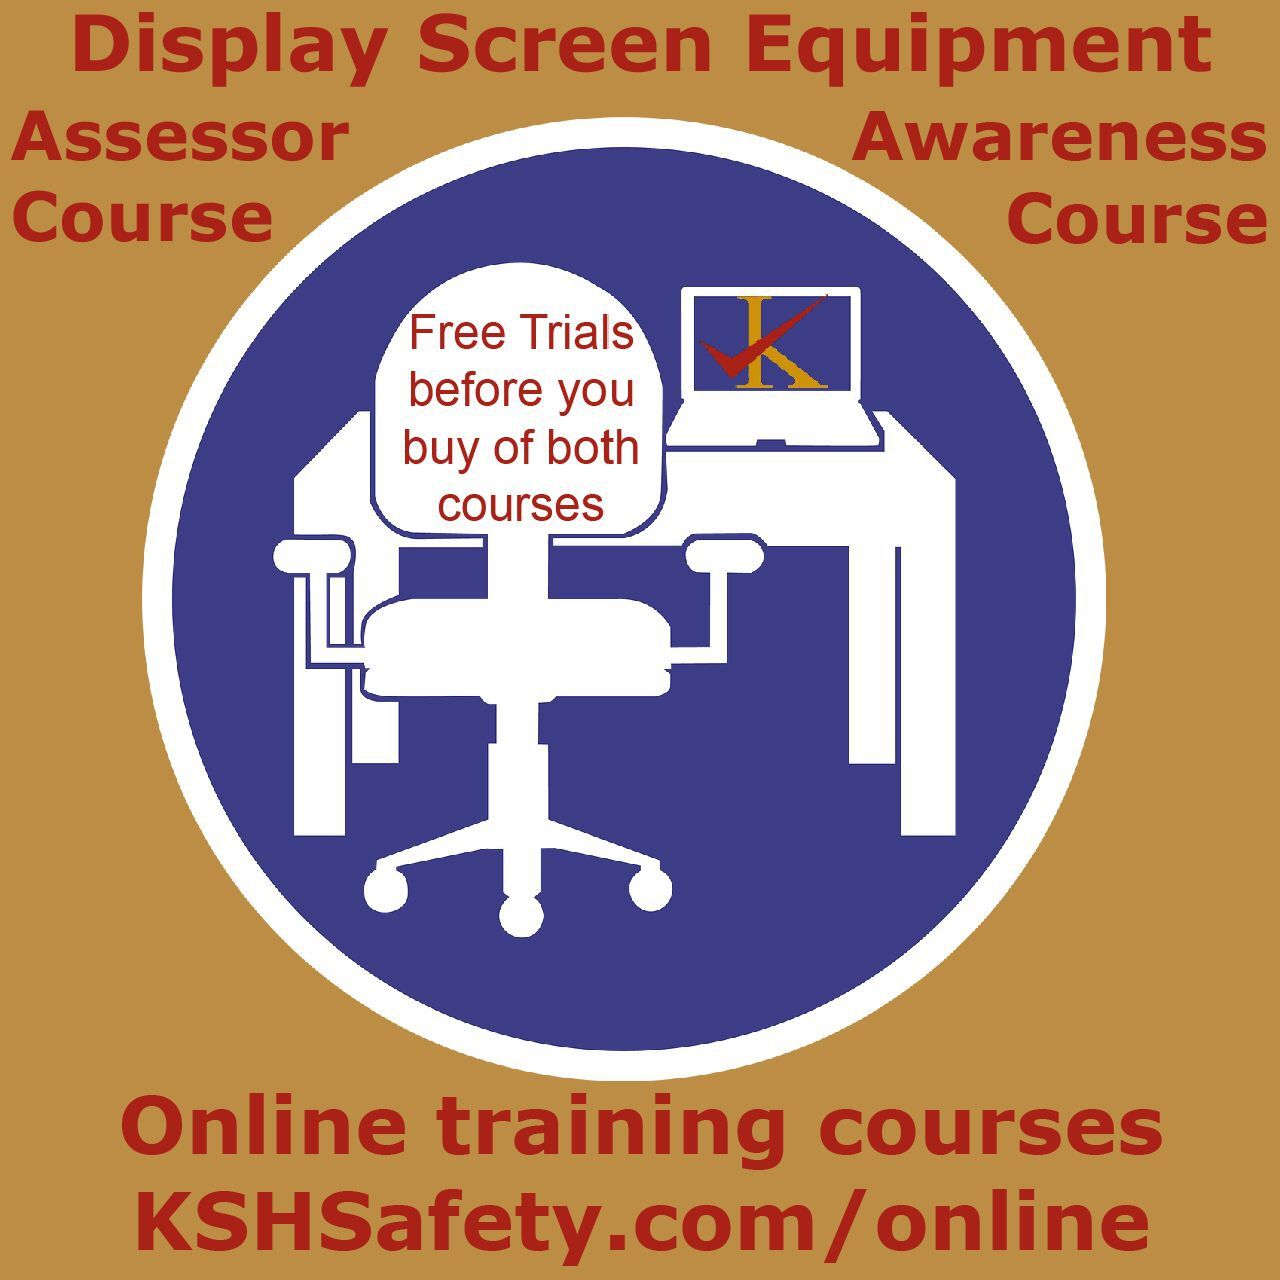 Display Screen Equipment Health and safety, Display